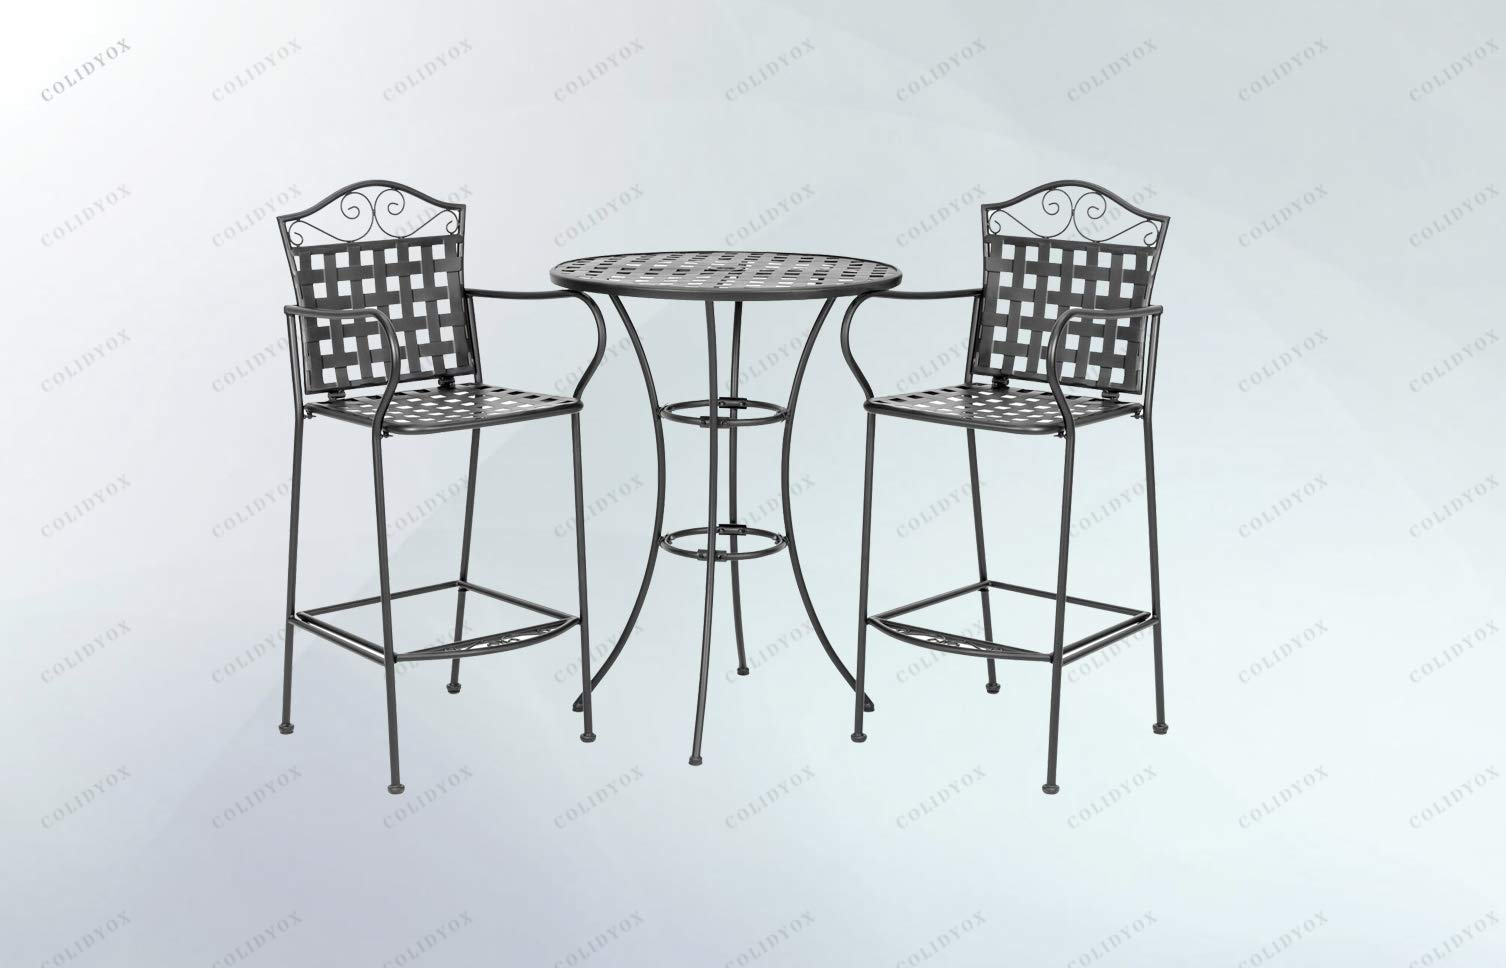 COLIDYOX>>>3-Piece Woven Pattern Wrought Iron Patio Bar Height Bistro Table Beautifully Designed and Built with a Solid and Decorative Wrought Iron Frame, It's Sure to Bring a Warm and invitin